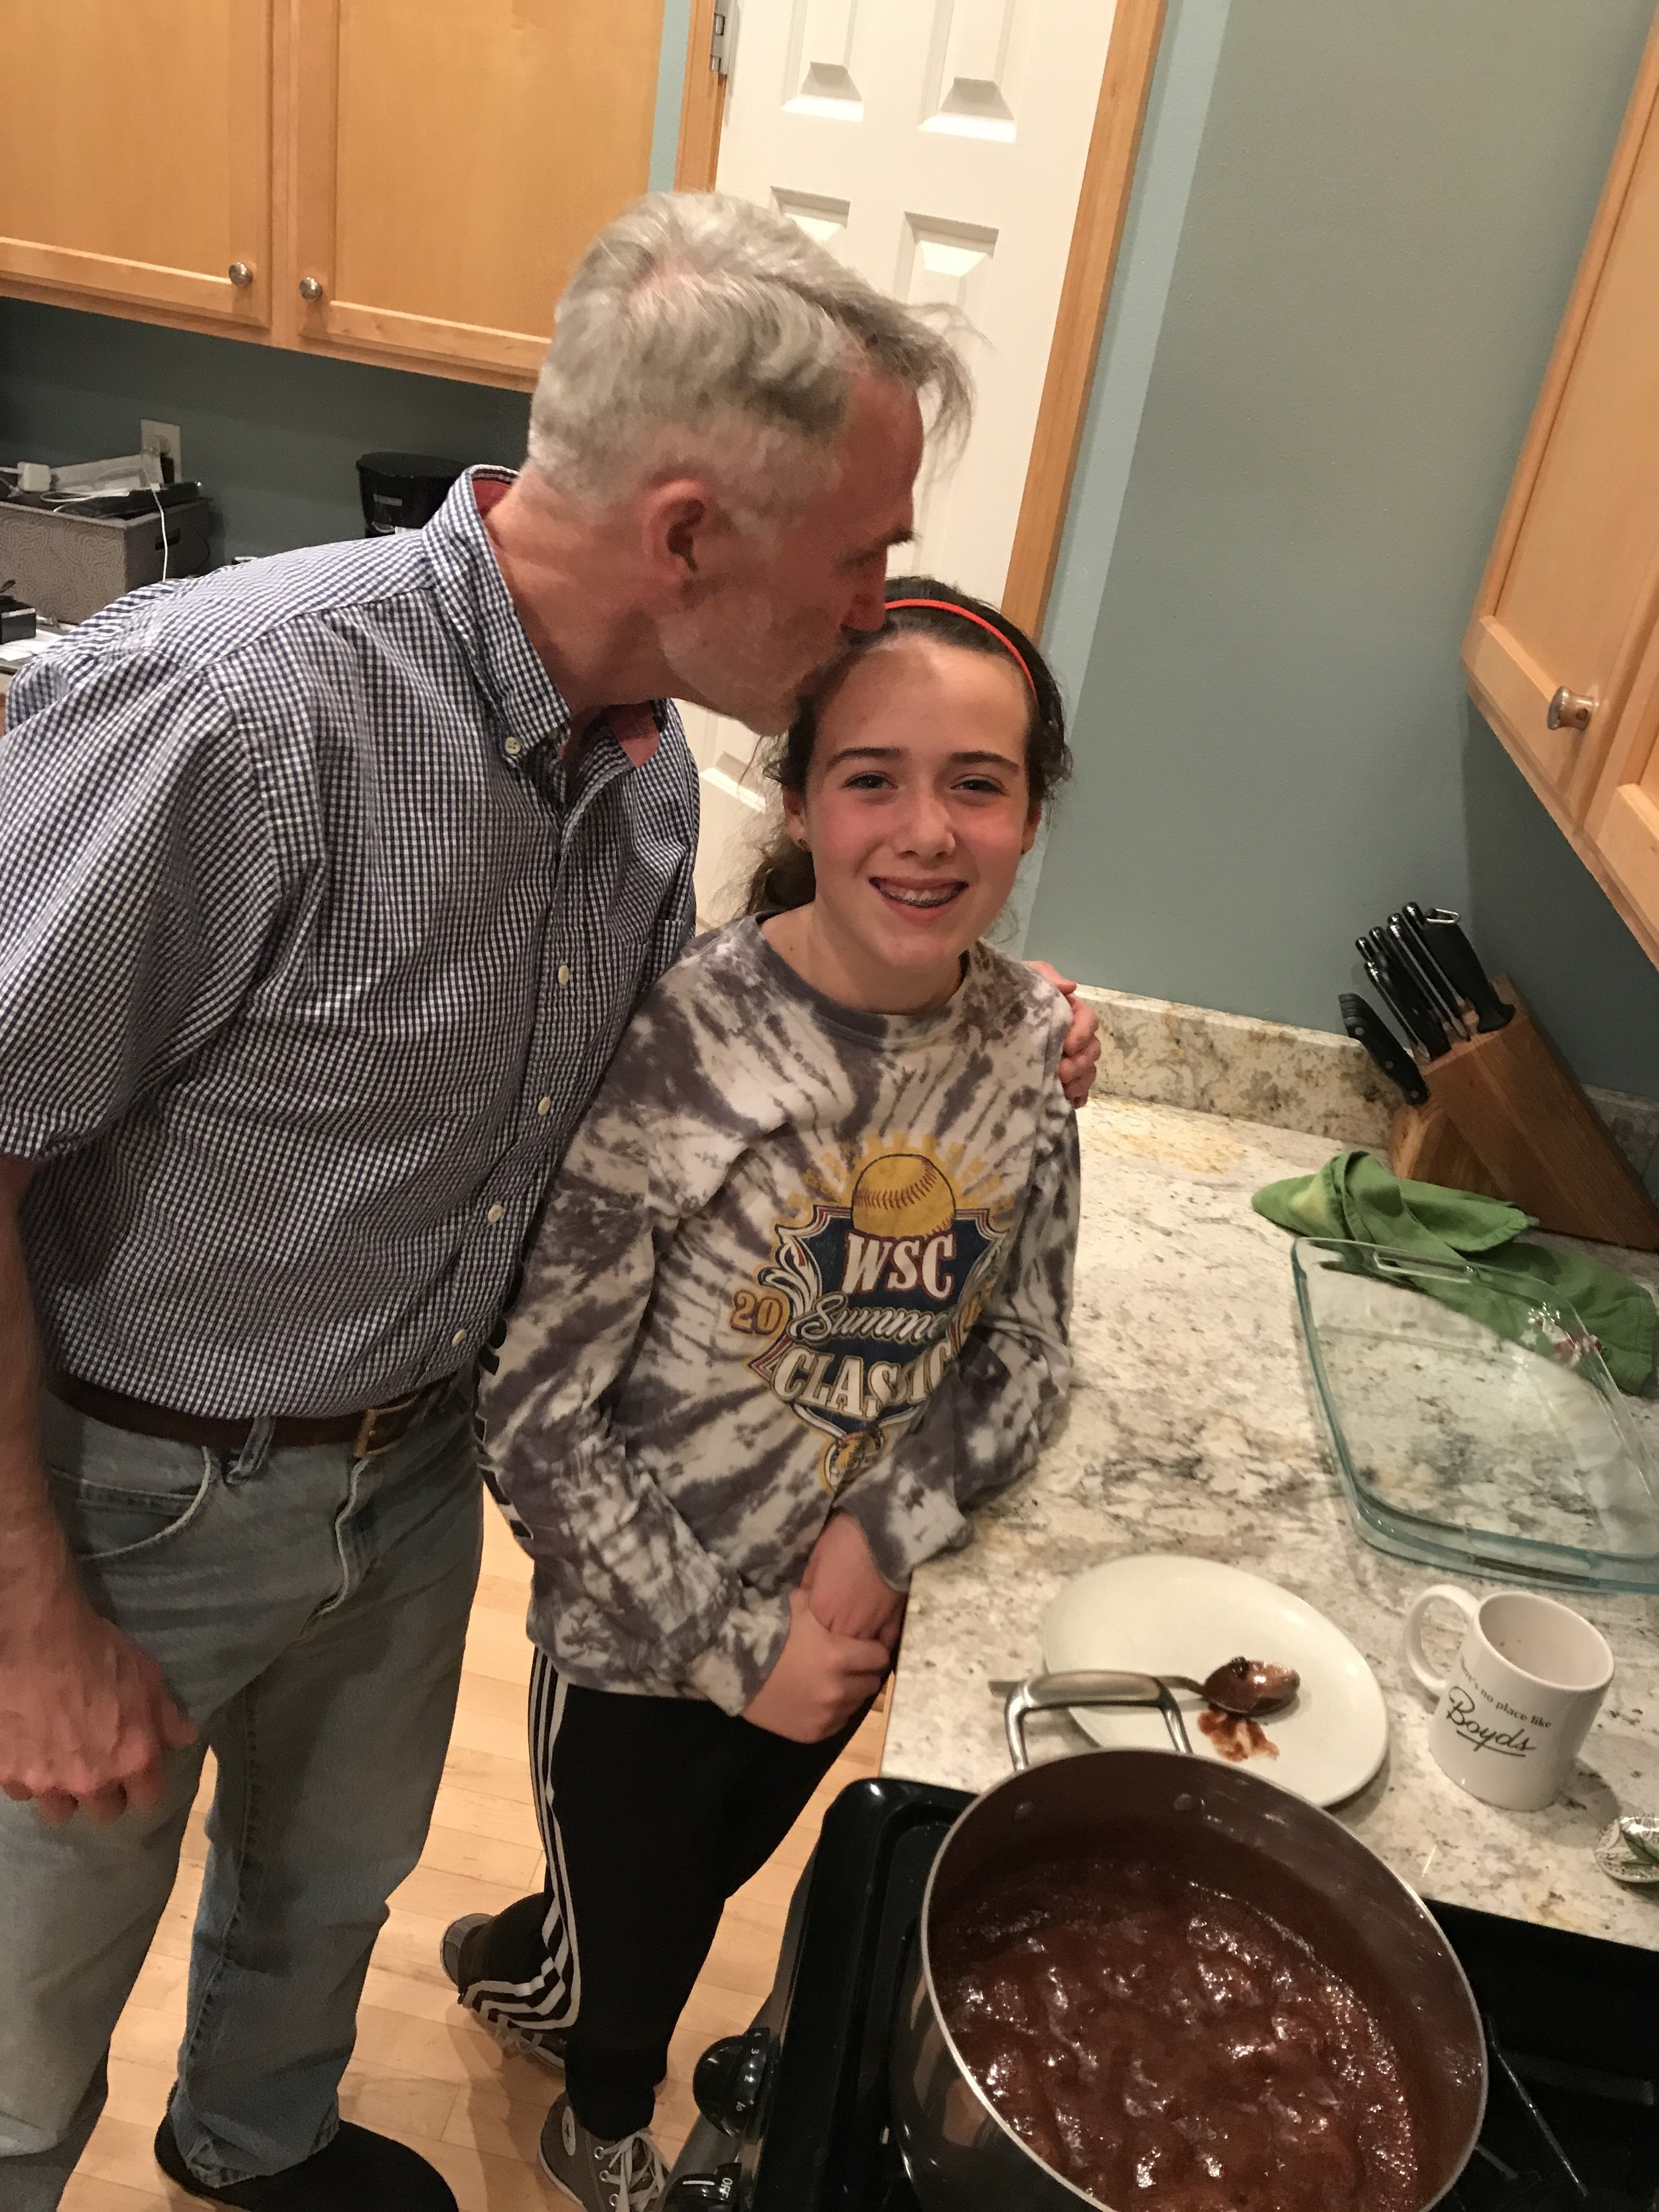 My dad teaching my daughter how to make his mom's fudge.